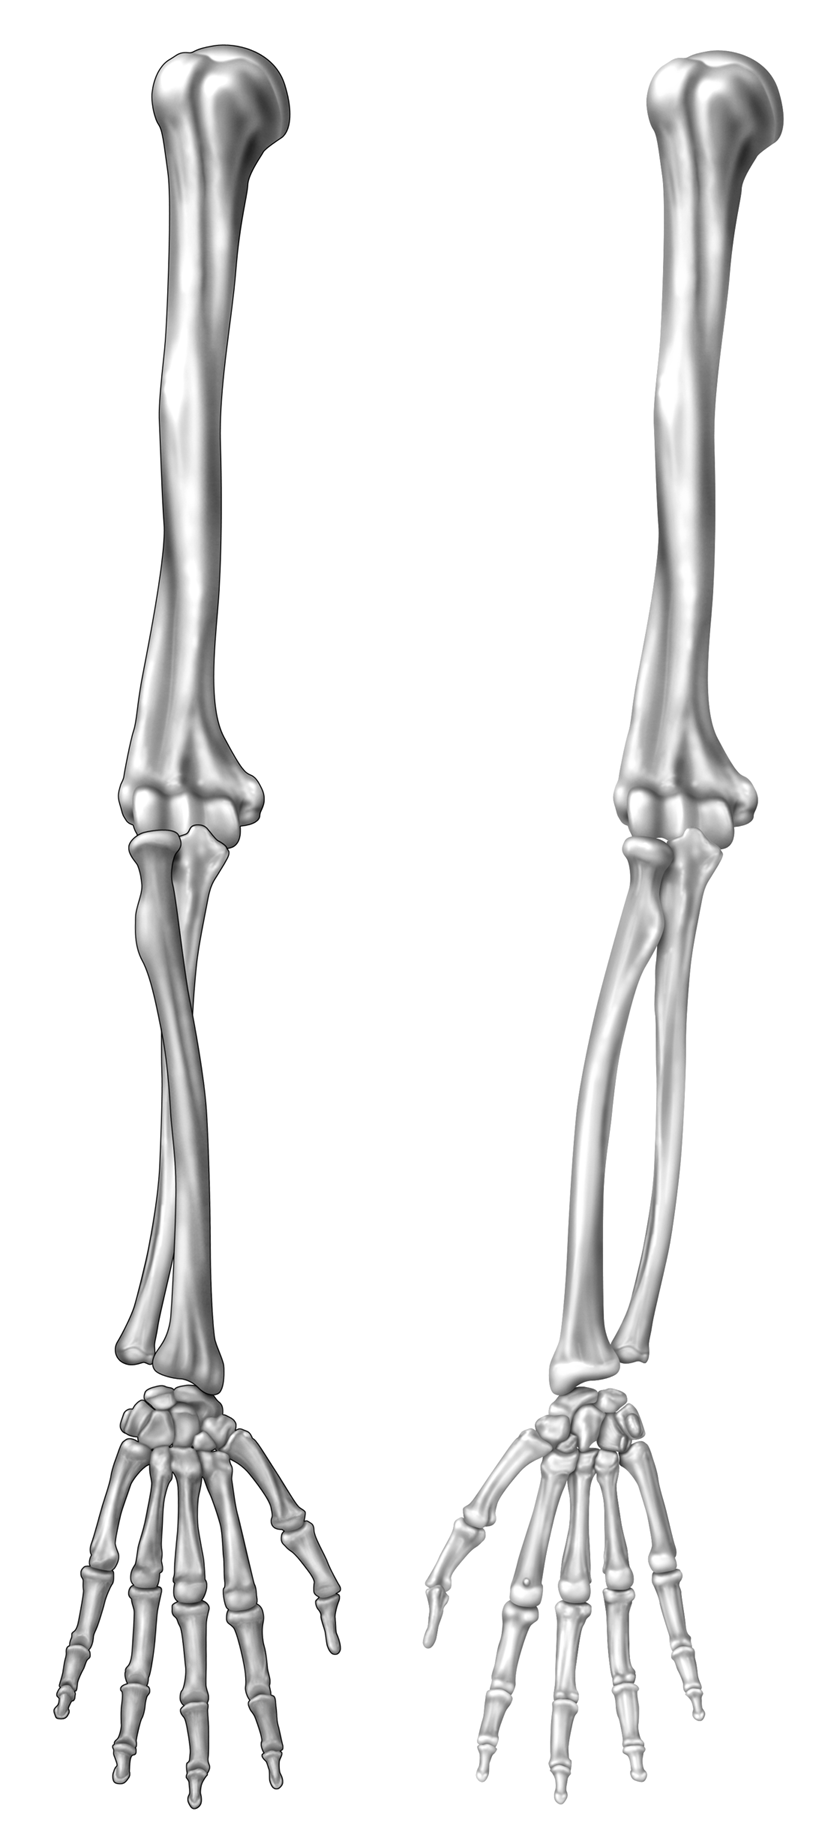 Elbow And Forearm Orthogate Press